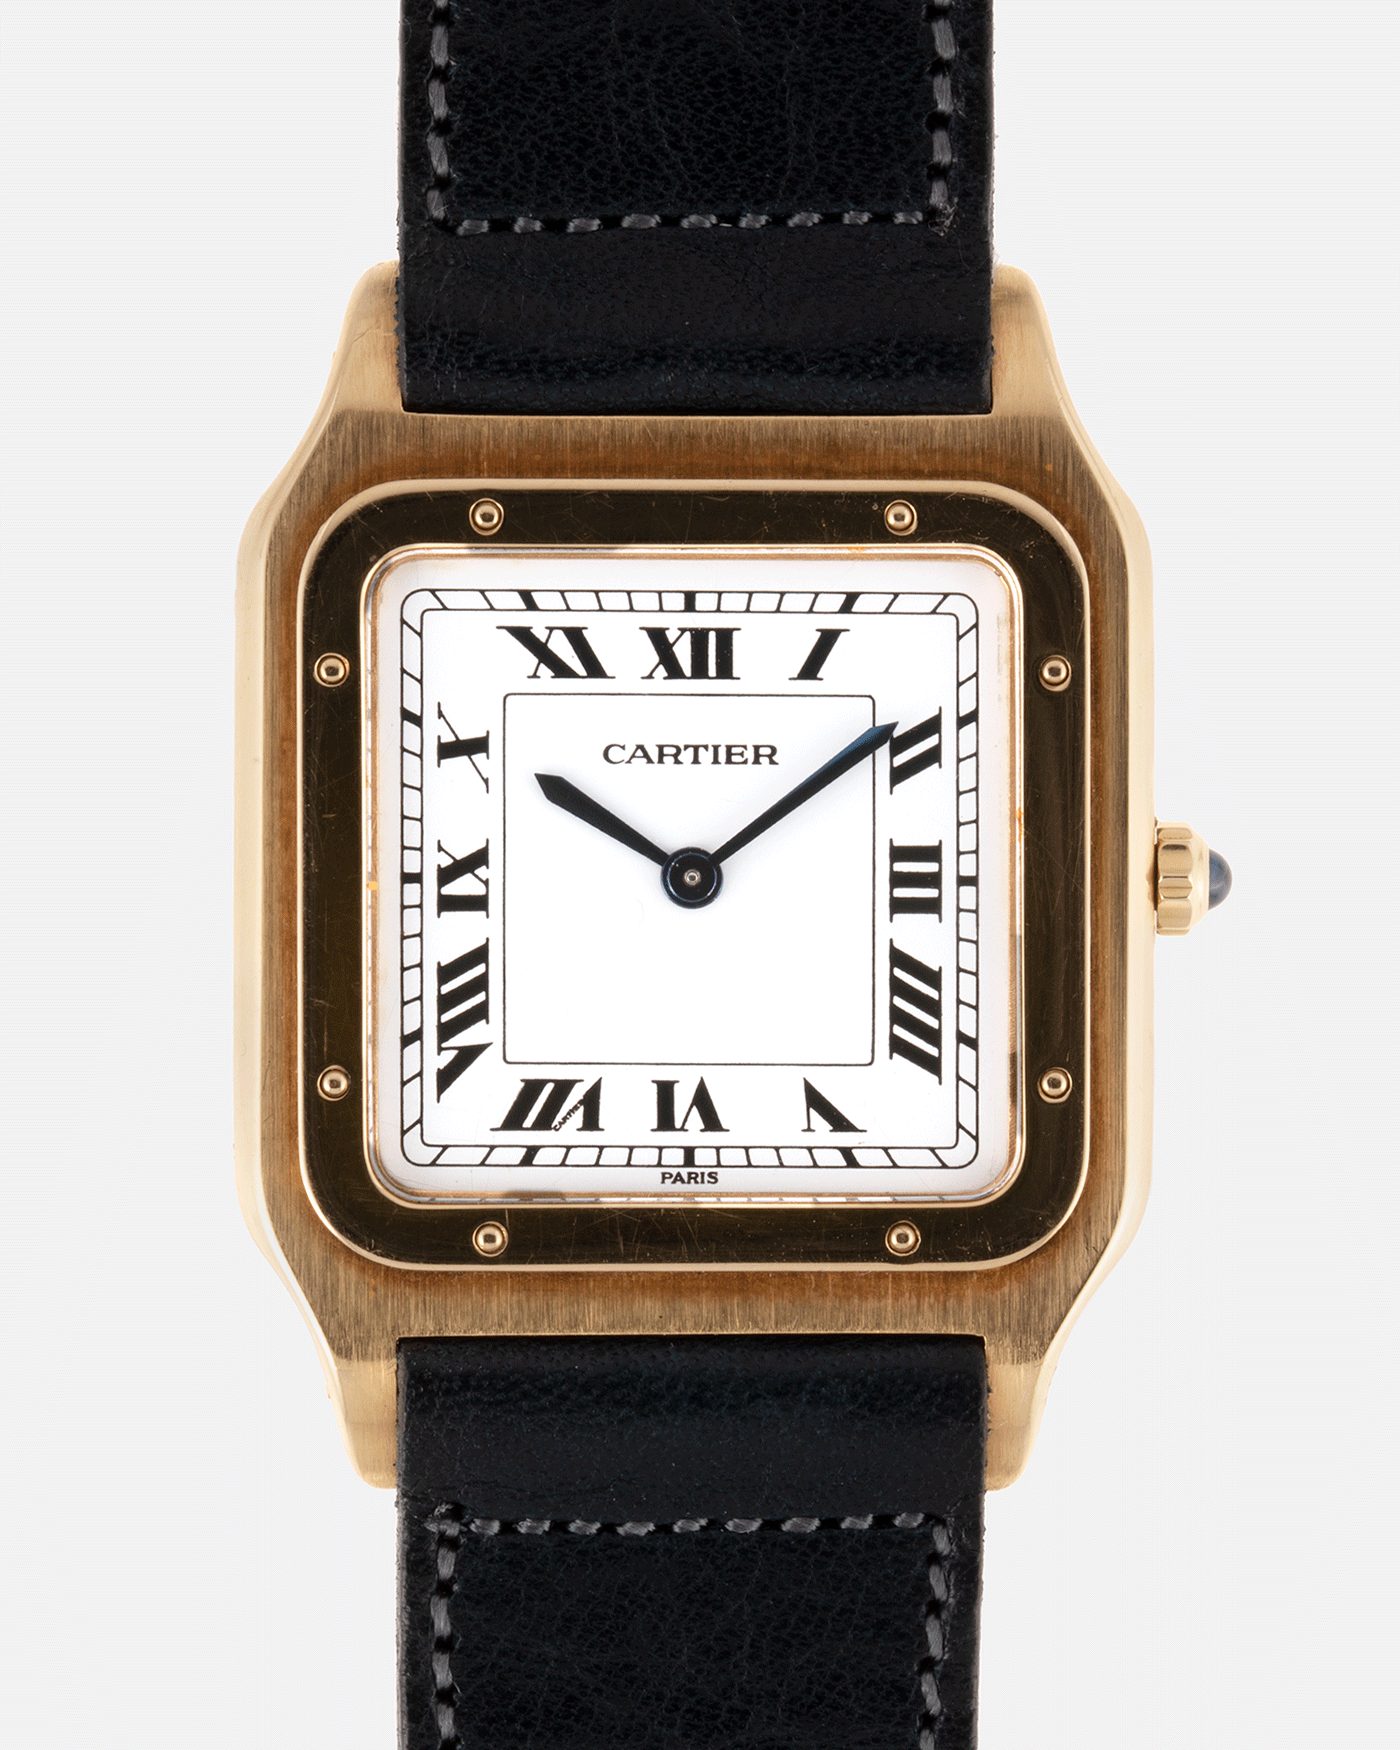 Cartier Santos Dumont 1575 'Paris'